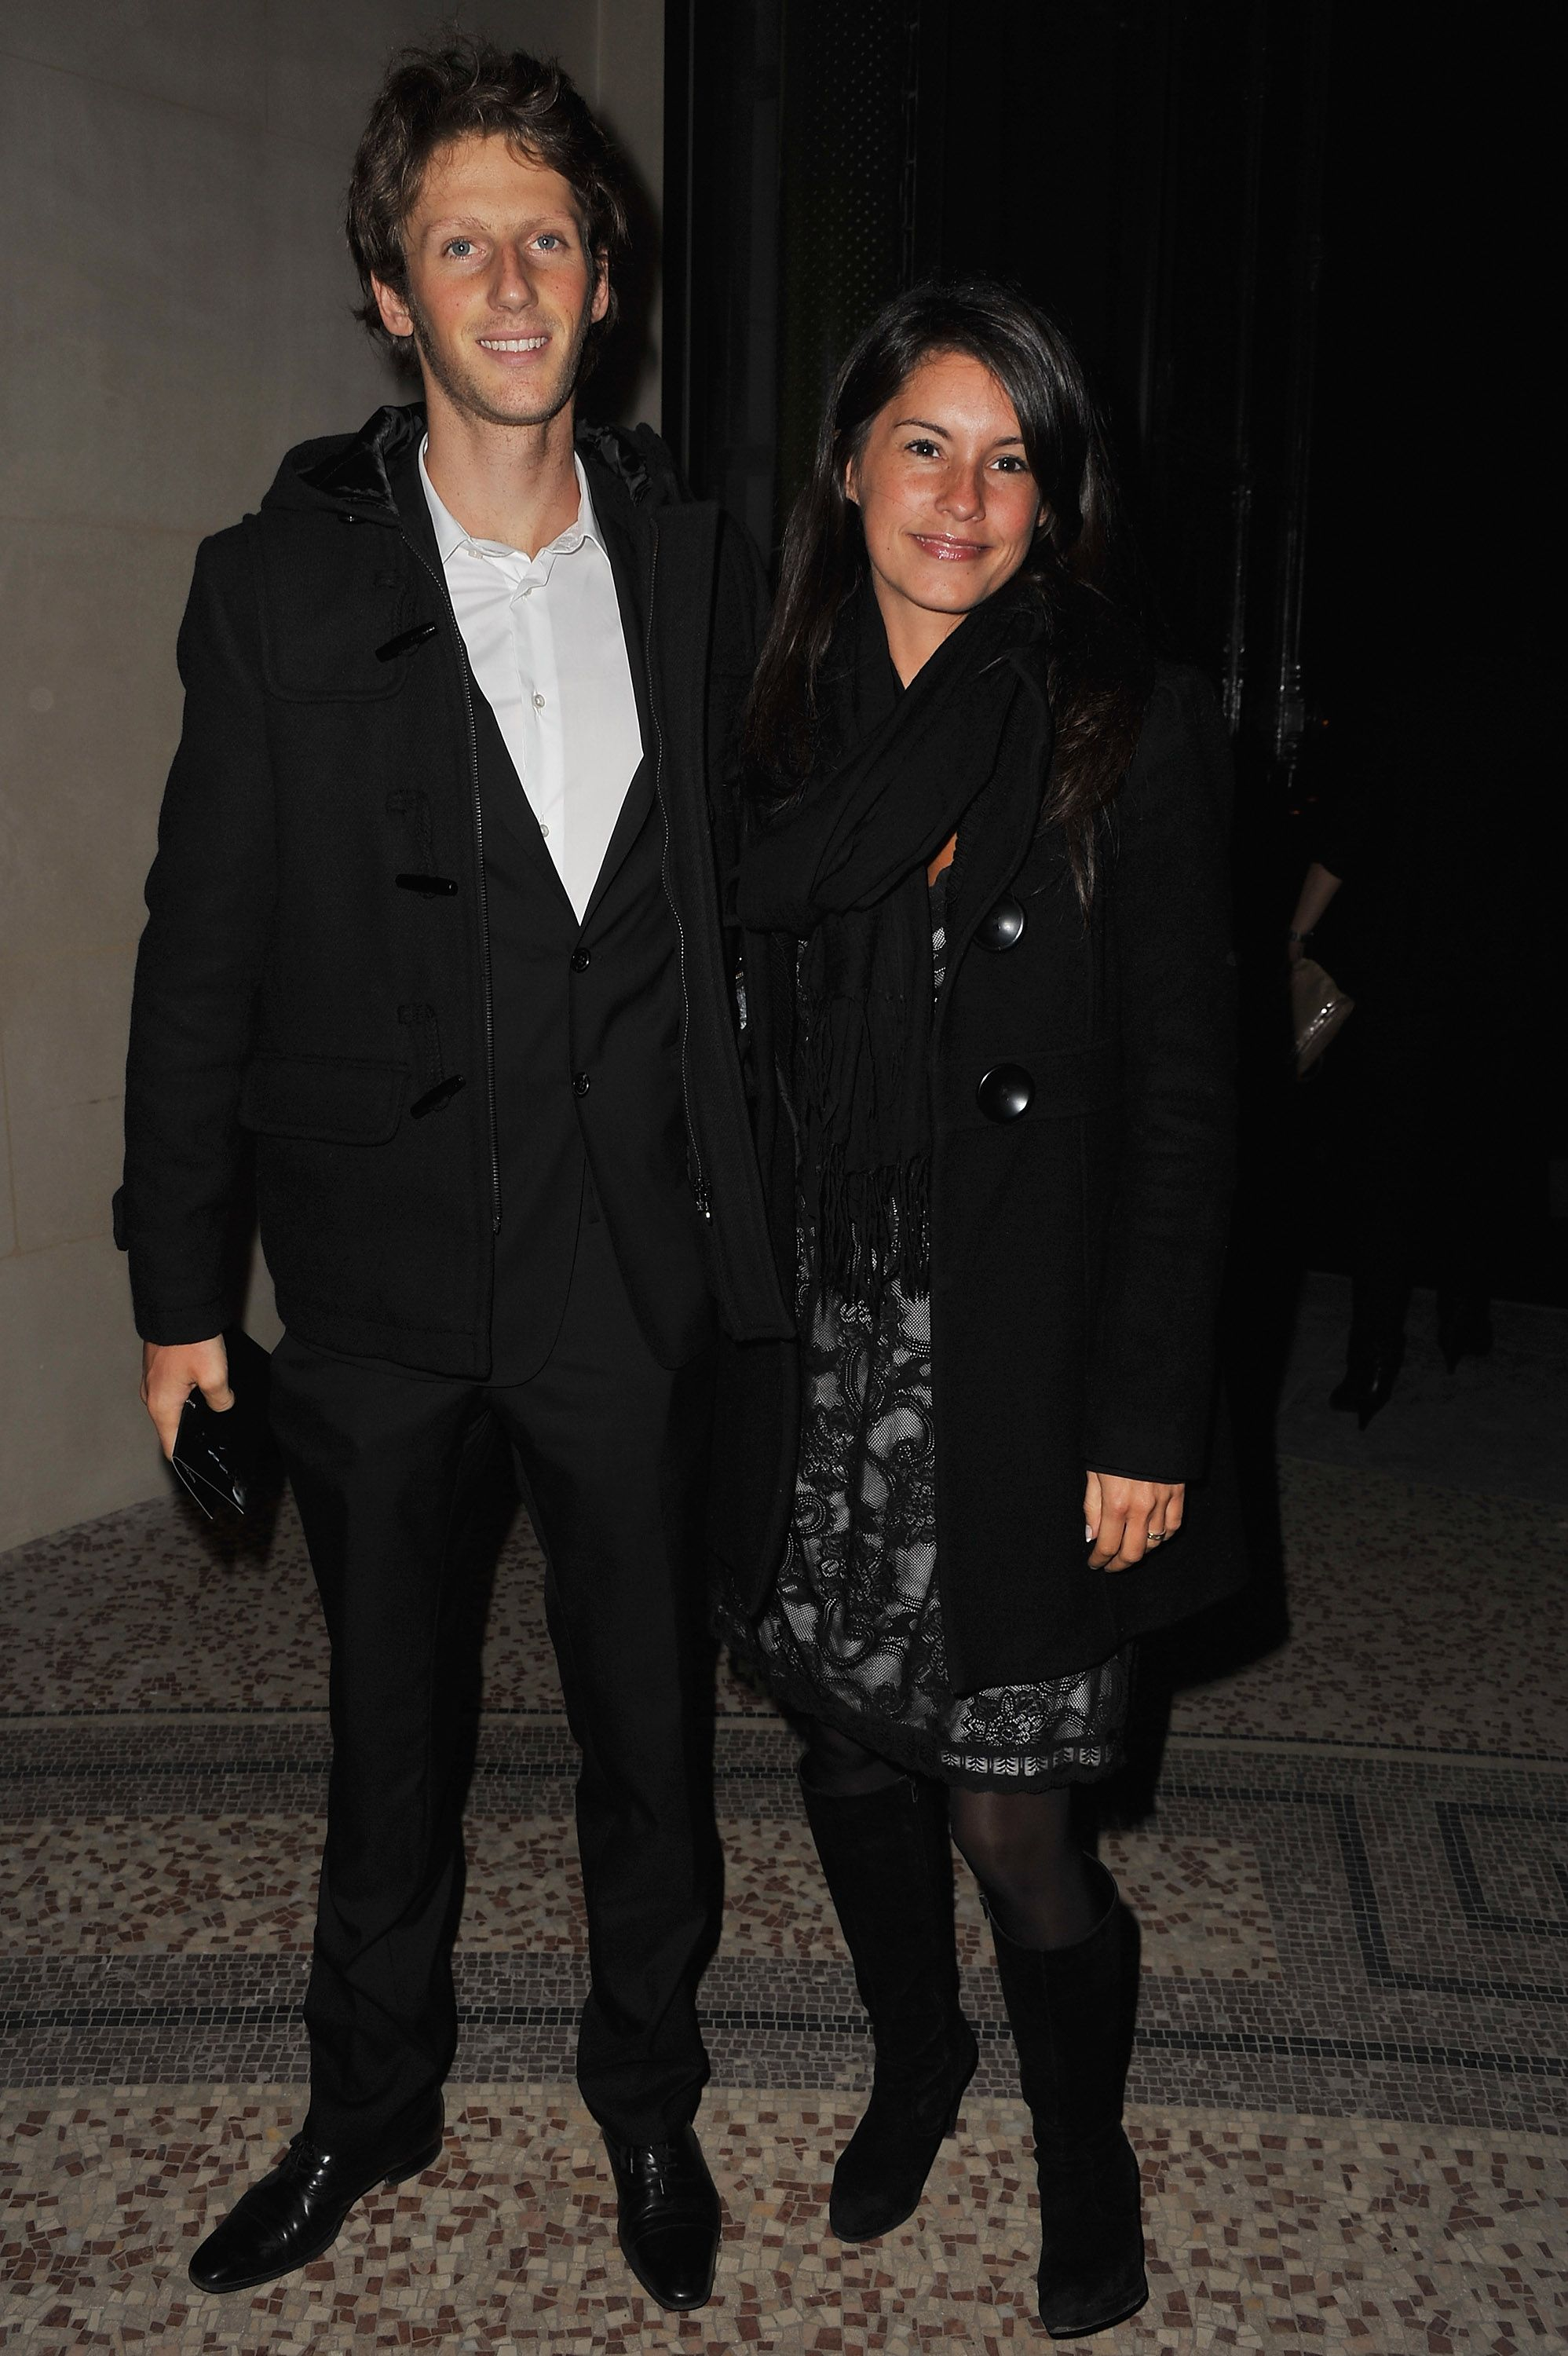 Romain Grosjean and Marion Jolles at the Pirelli Calendar launch on January 13, 2011, in Paris, France | Photo: Getty Images